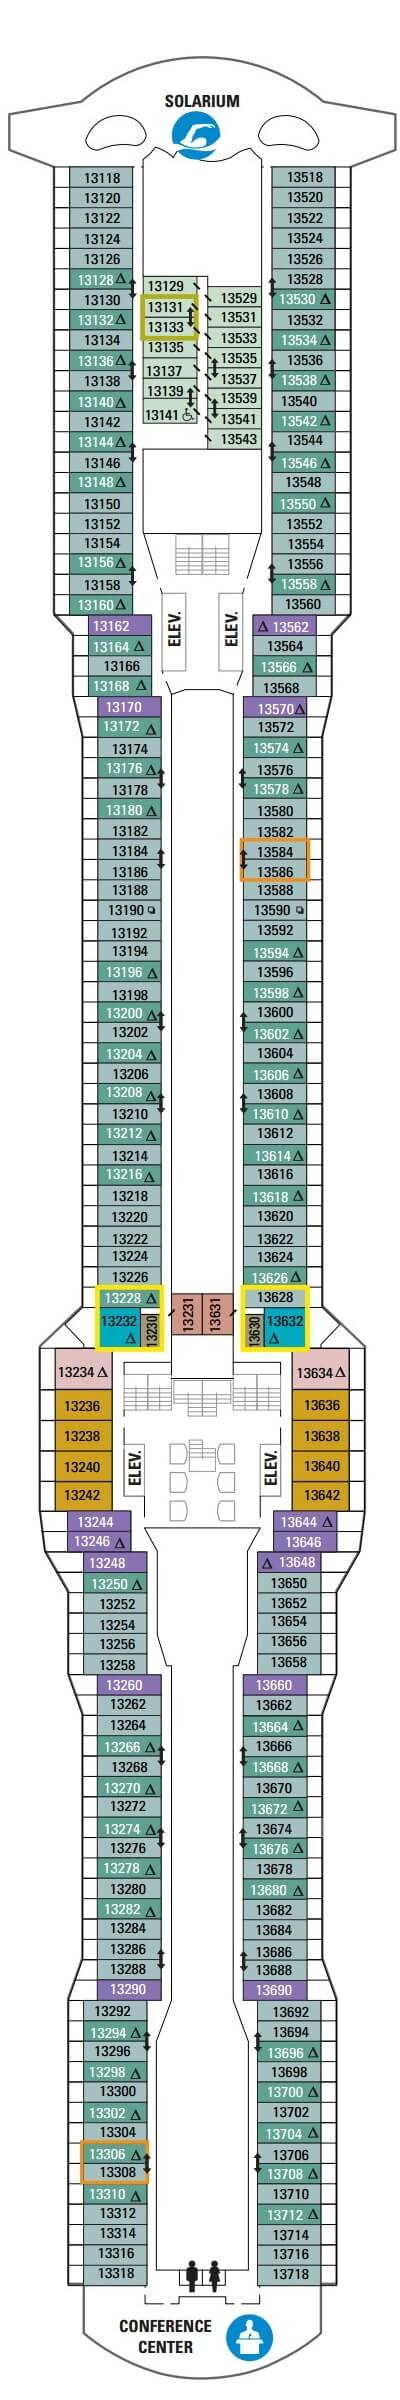 Ovation of the Seas Deck 13 layout